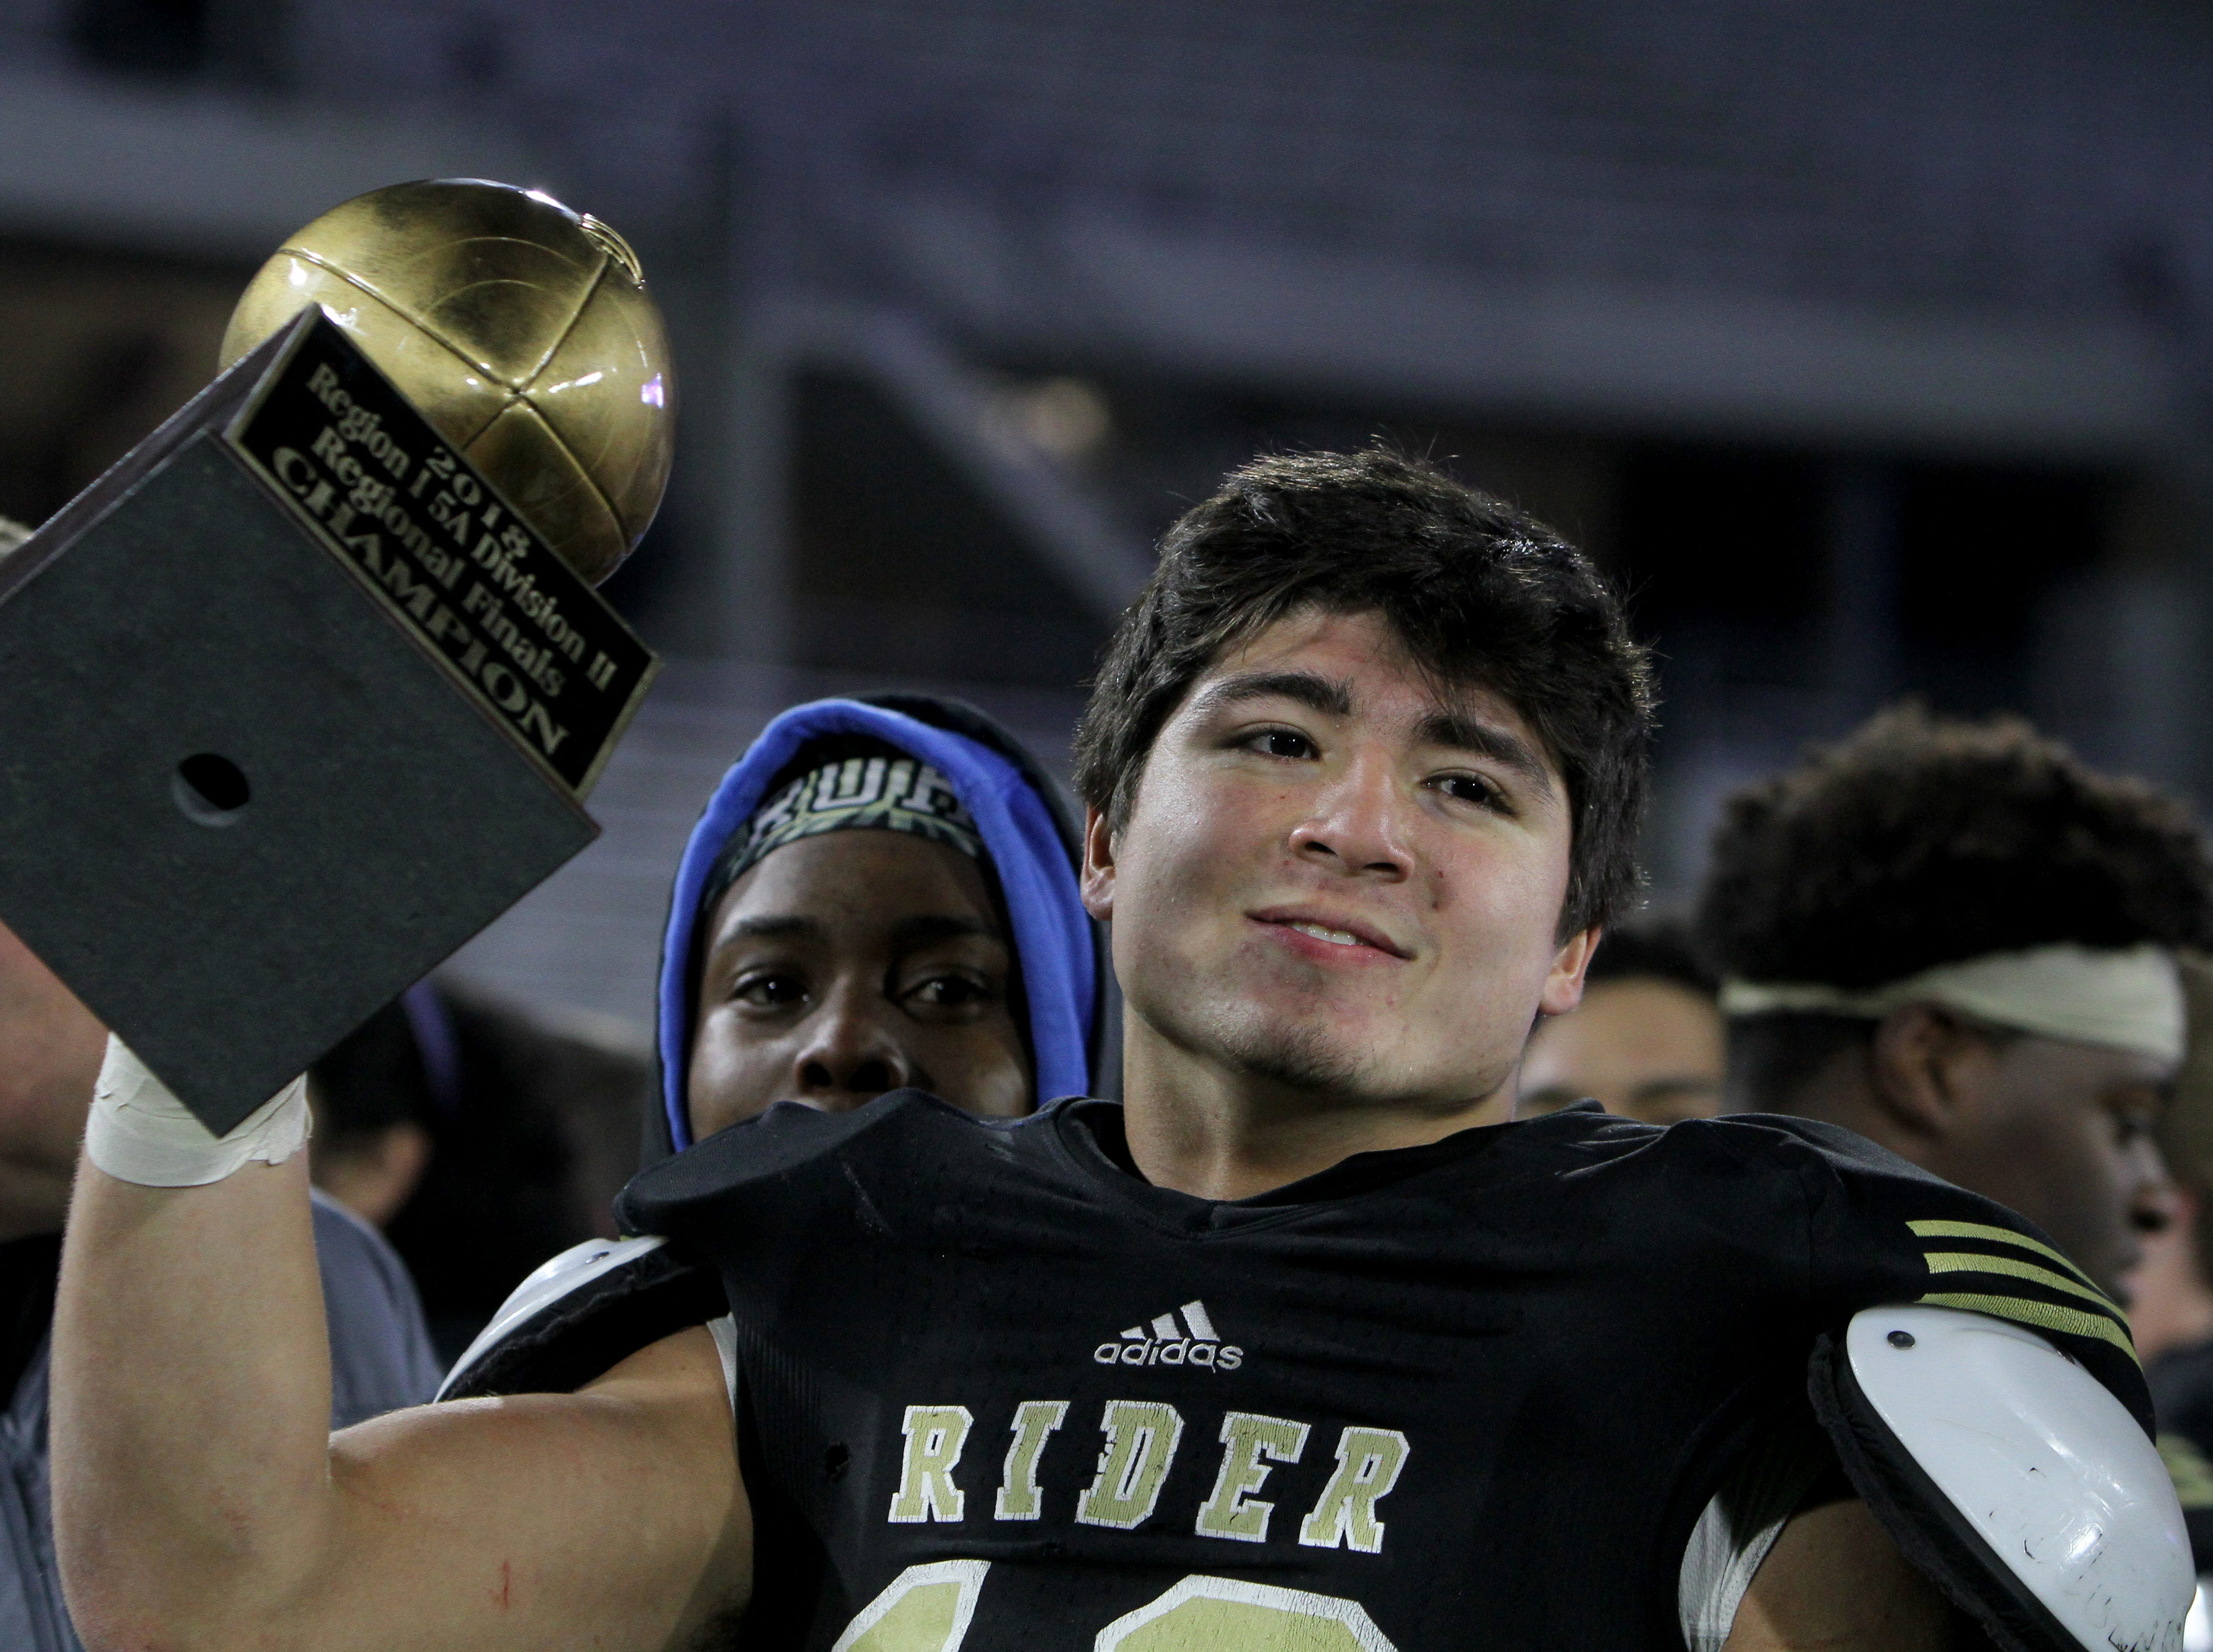 Rider's Jacob Rodriguez holds up the golden ball after the Raiders win over Lubbock Cooper Thursday, Dec. 6, 2018, at Wildcats Stadium in Abilene. The Raiders defeated the Pirates 38-35.